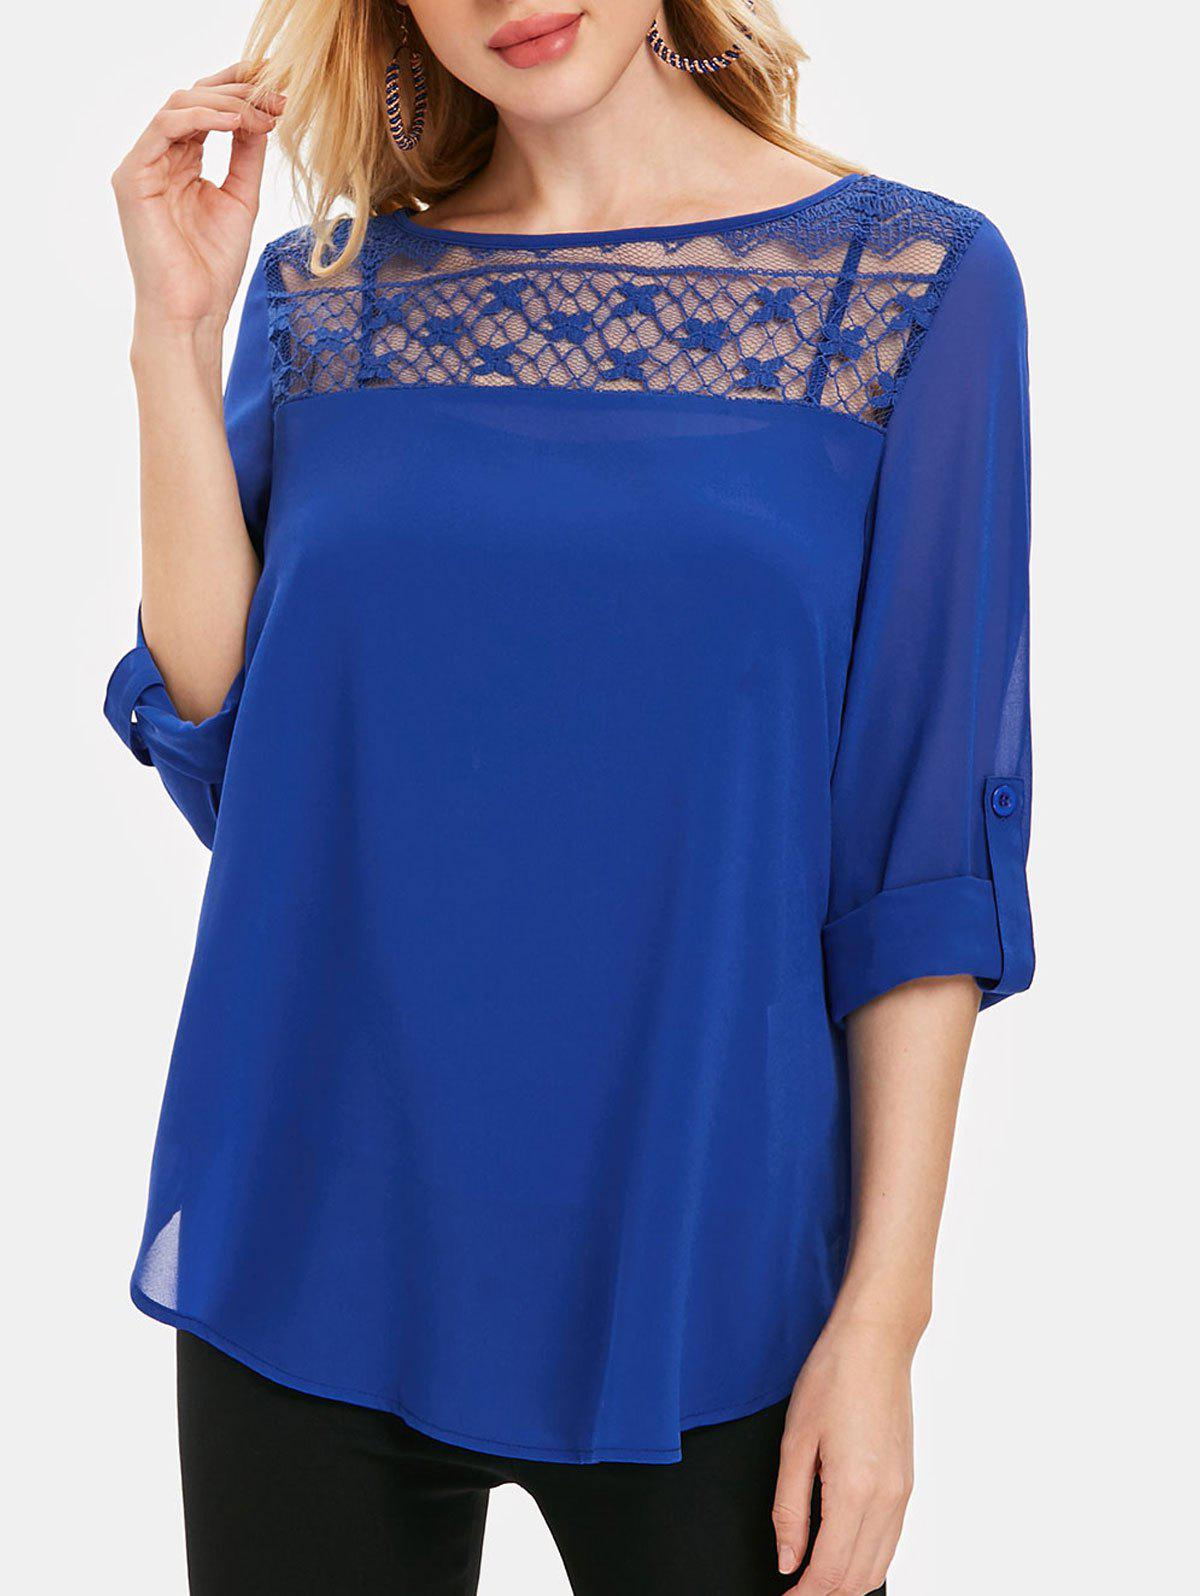 Lace Insert Roll Tab Sleeve Chiffon Blouse - BLUEBERRY BLUE 2XL